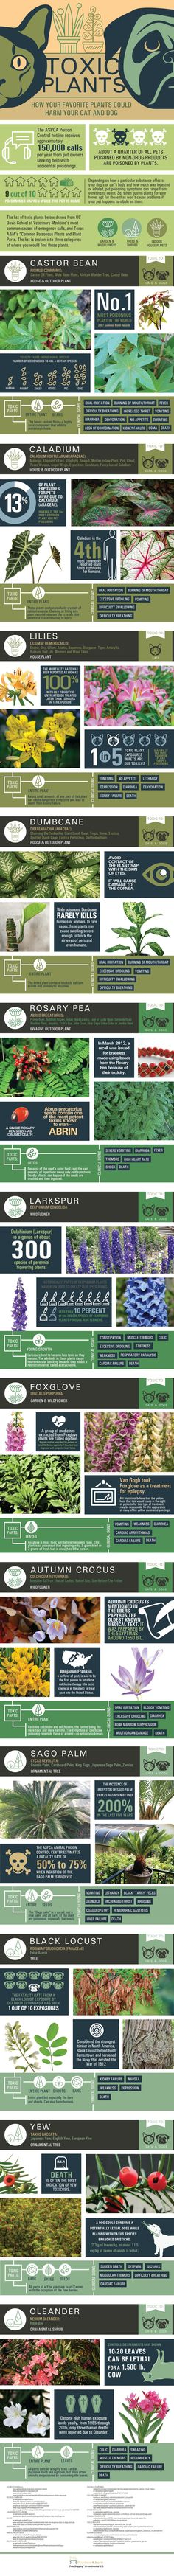 12 most toxic plants to pets #Infographic #Pets #Cats #Dogs